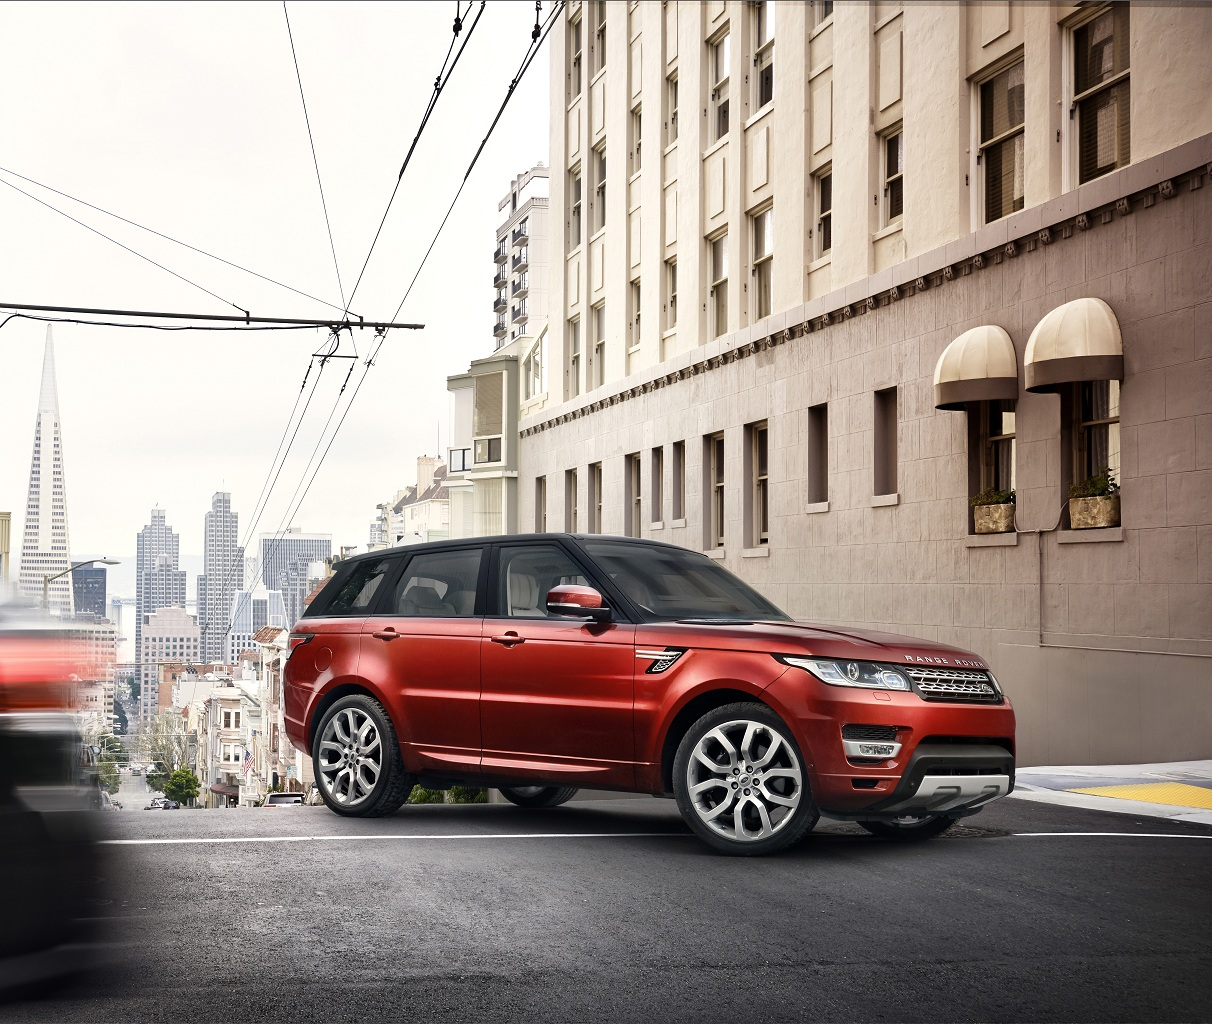 Land Rover Sport Used: AutoMonthly, We Got All The News Of The Auto Industry